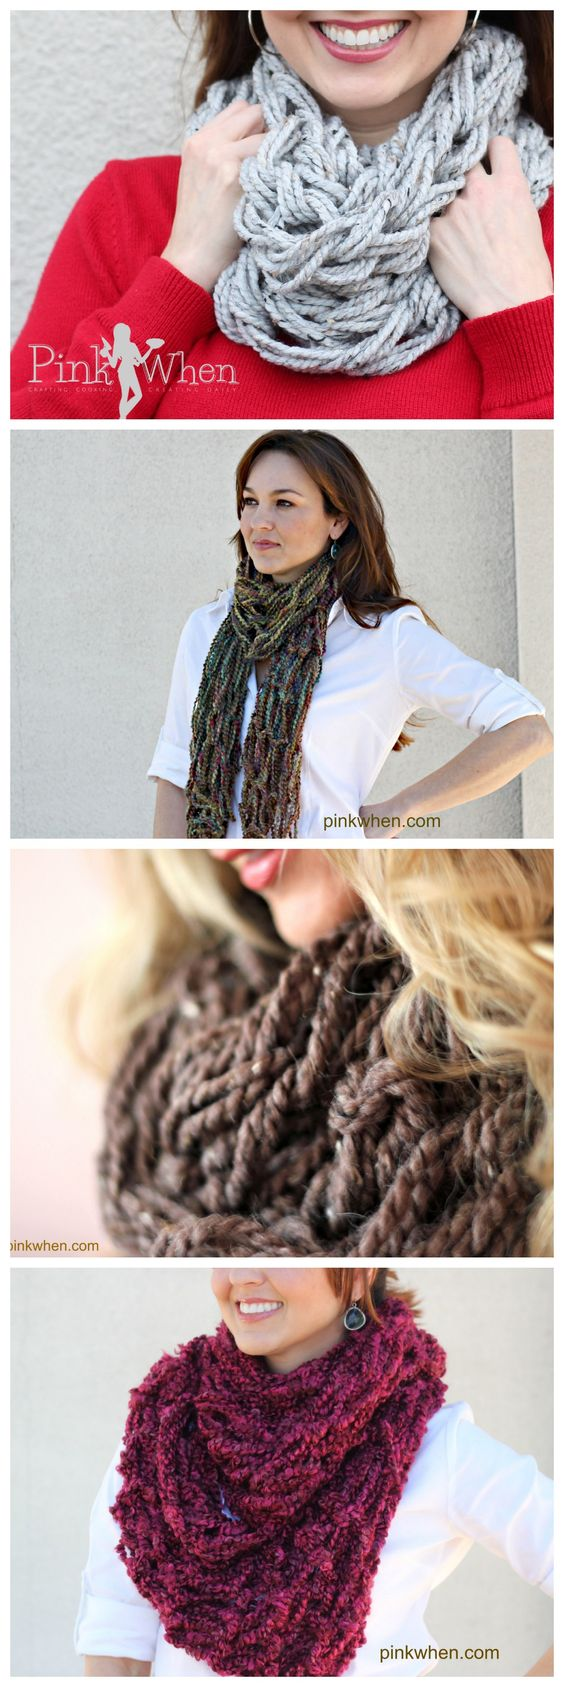 Knitting A Scarf Tutorial : Arm knitting diy infinity scarf tutorial awesome